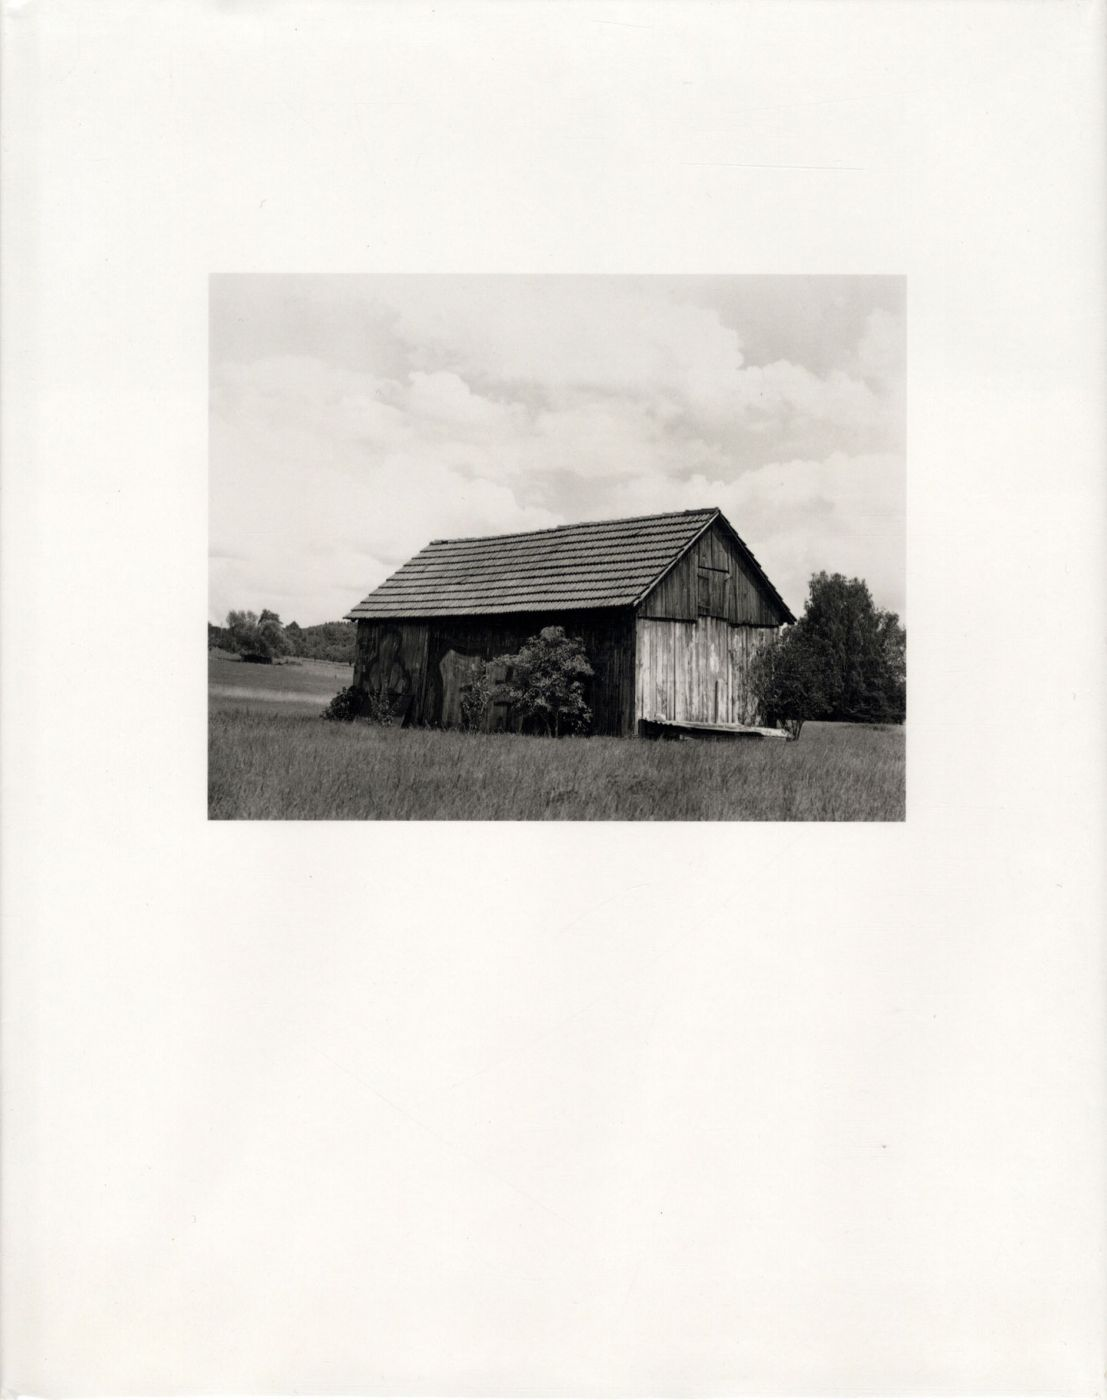 Collier Schorr: Forest and Fields, Volume 1: Neighbors/Nachbarn [SIGNED]